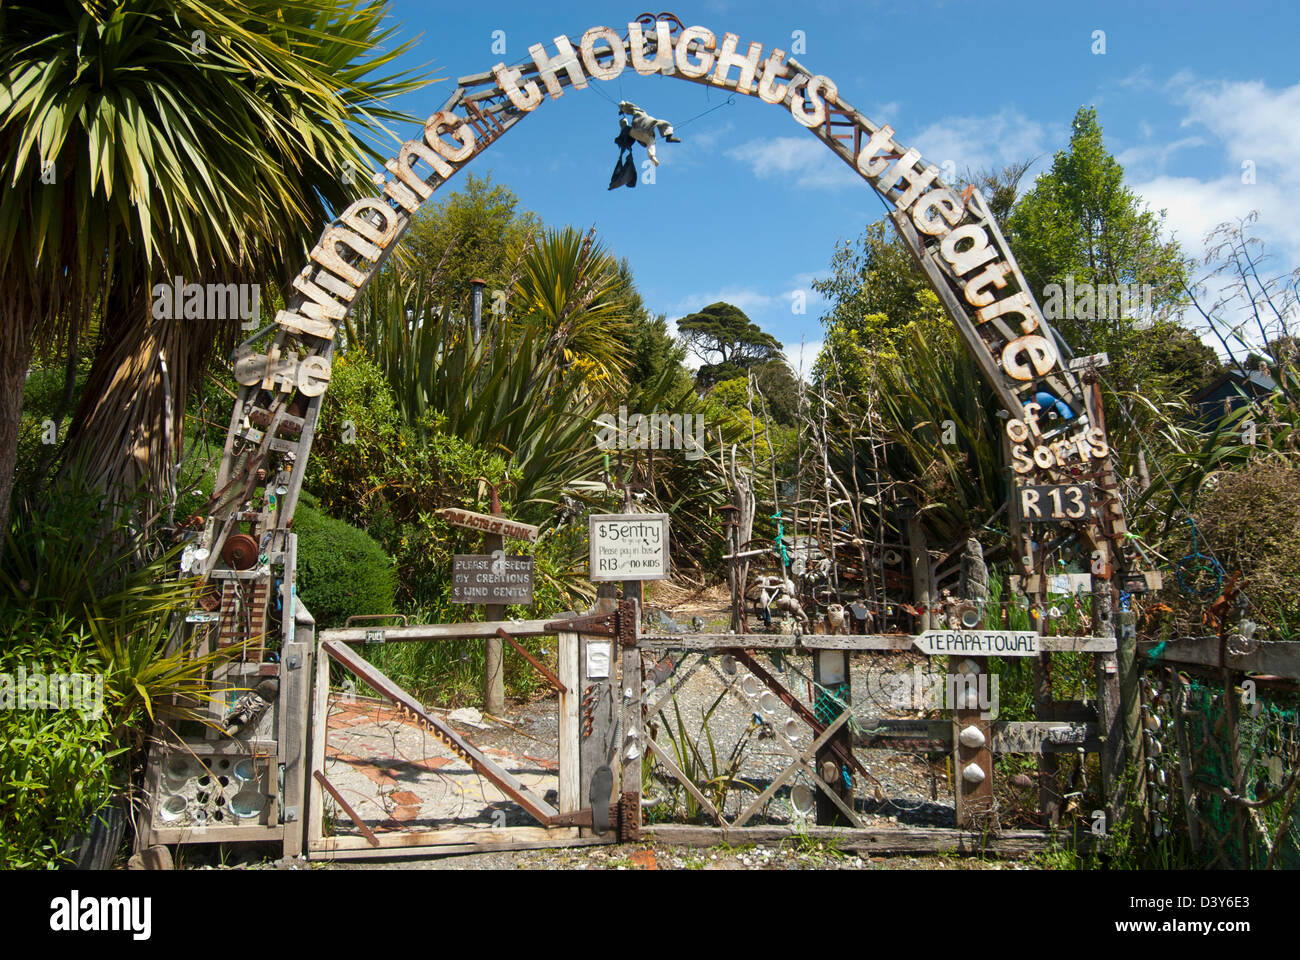 Entrance to the Lost Gypsy Gallery and Winding Thoughts Theatre, Papatowai, Catlins, New Zealand - Stock Image